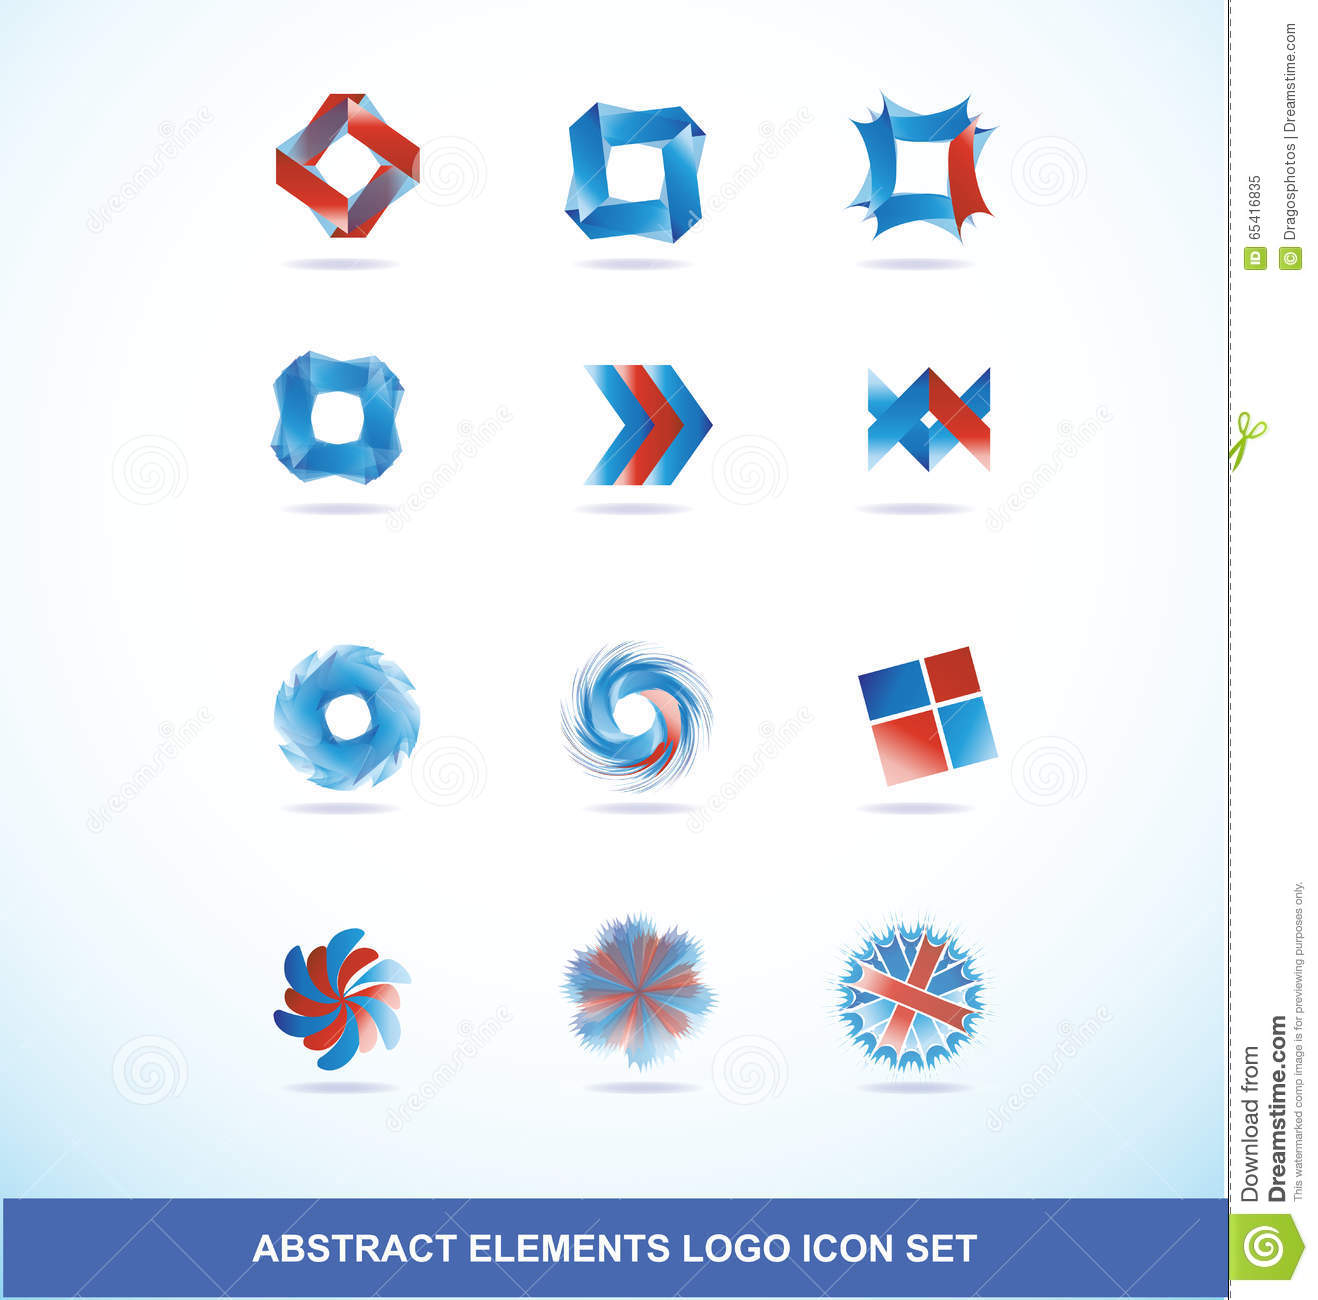 Gradient Abstract Company Logo Template: Corporate Business Blue Red Logo Elements Set Stock Vector